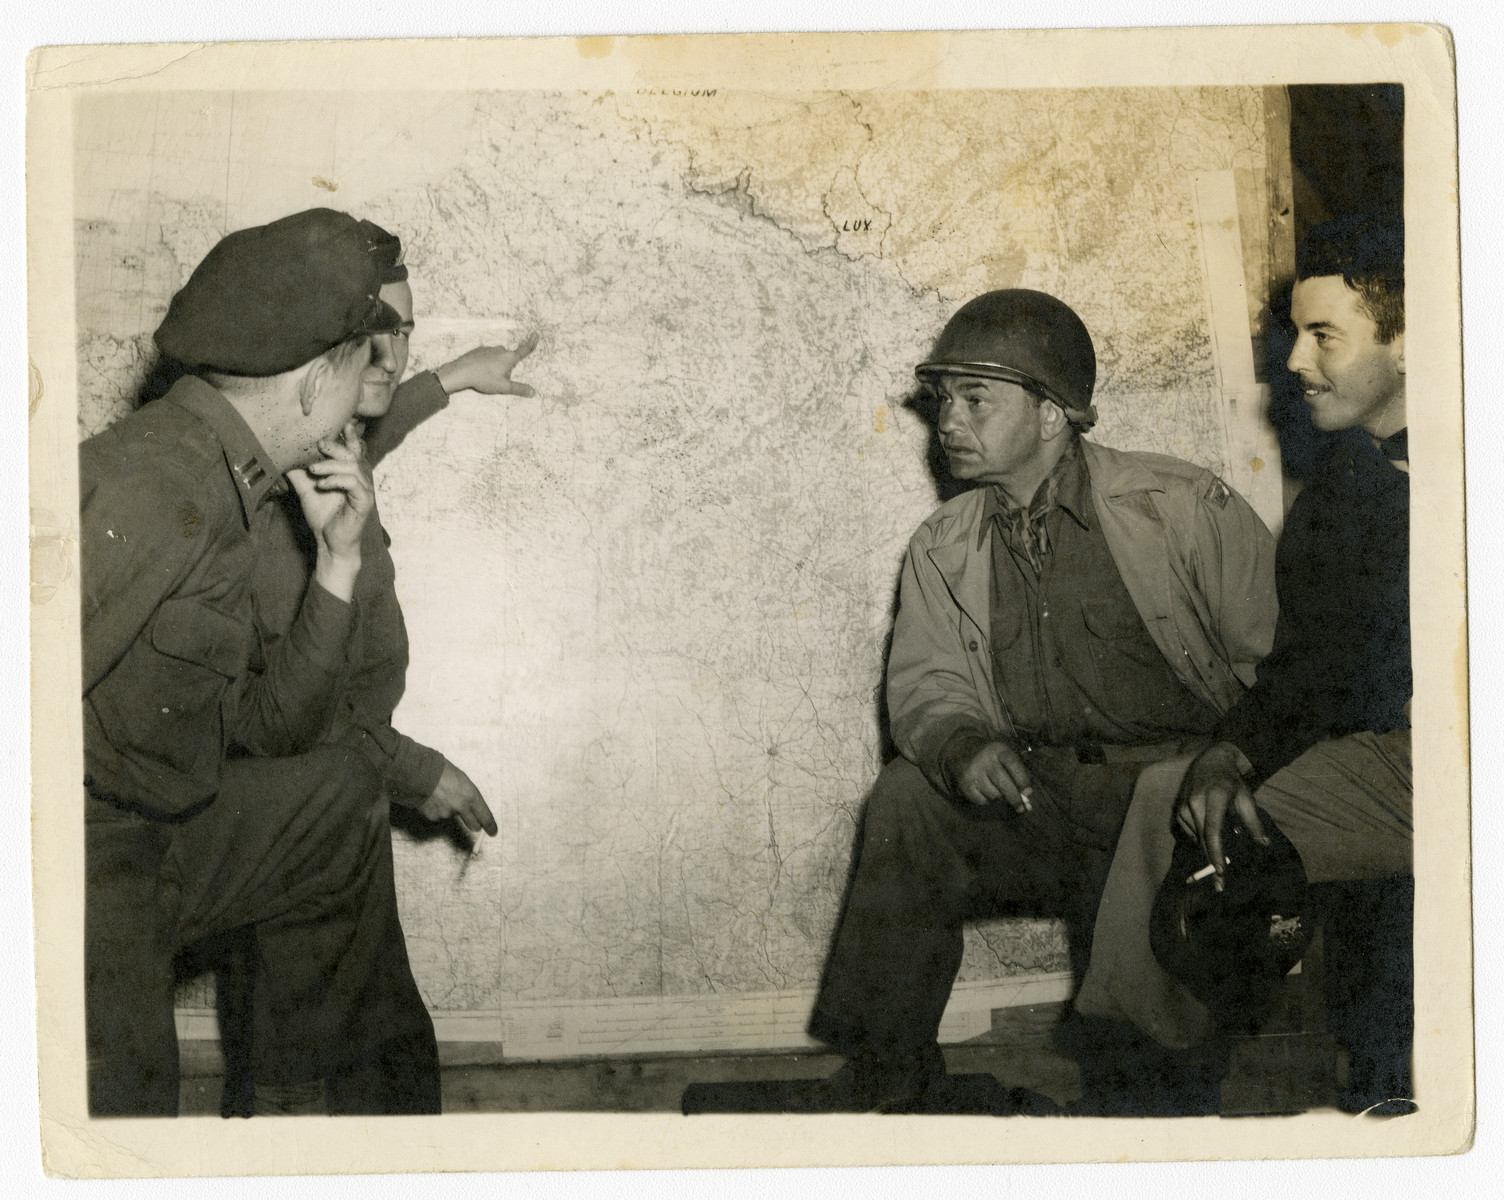 """Edward G. Robinson visits American military headquarters in Normandy.  The original captions read: """"Edward G. Robinson: What is the next target?"""" and, """"Edward G. Robinson visits Normandy."""""""